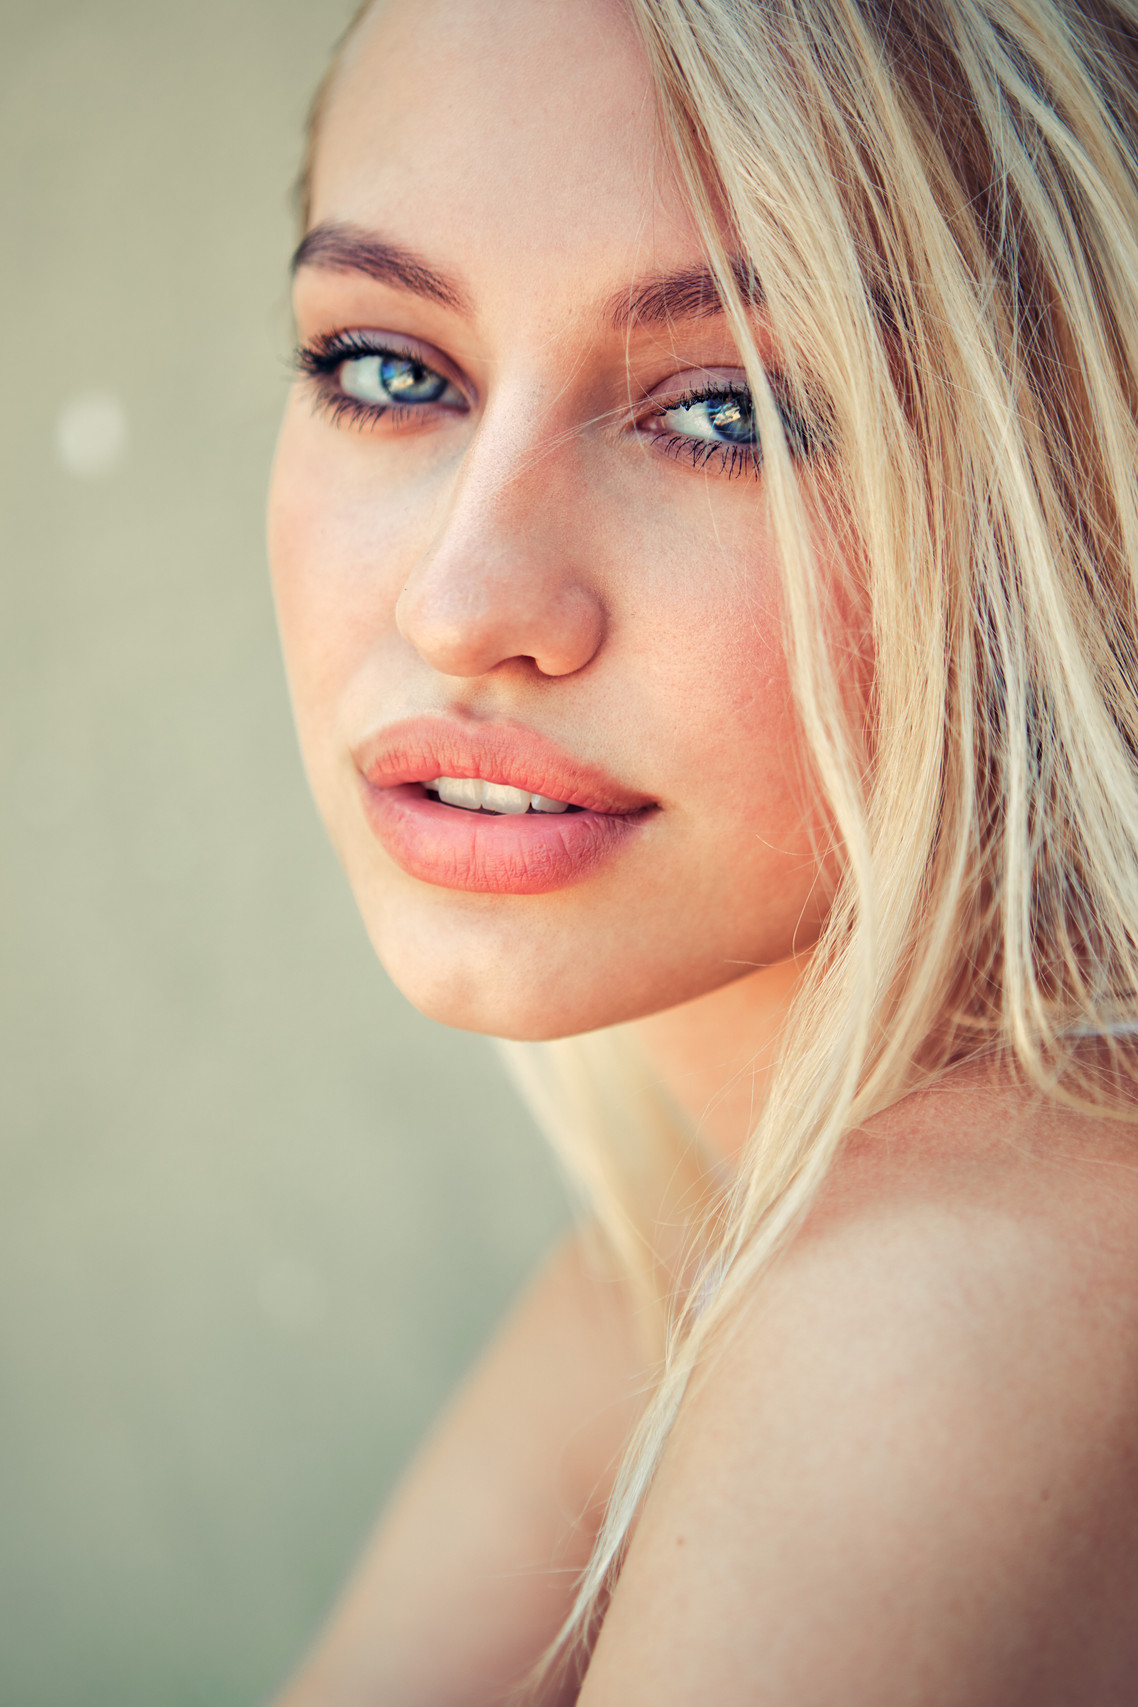 """Reminiscent of Angelina Jolie's blonde look from the film """"Gone In 60 Seconds"""", Swedish Model Emelie MacInnes poses with big lips, striking blue eyes, and blonde hair falling softly on her face in a beauty portrait by Los Angeles fashion photographer Patrick Patton."""